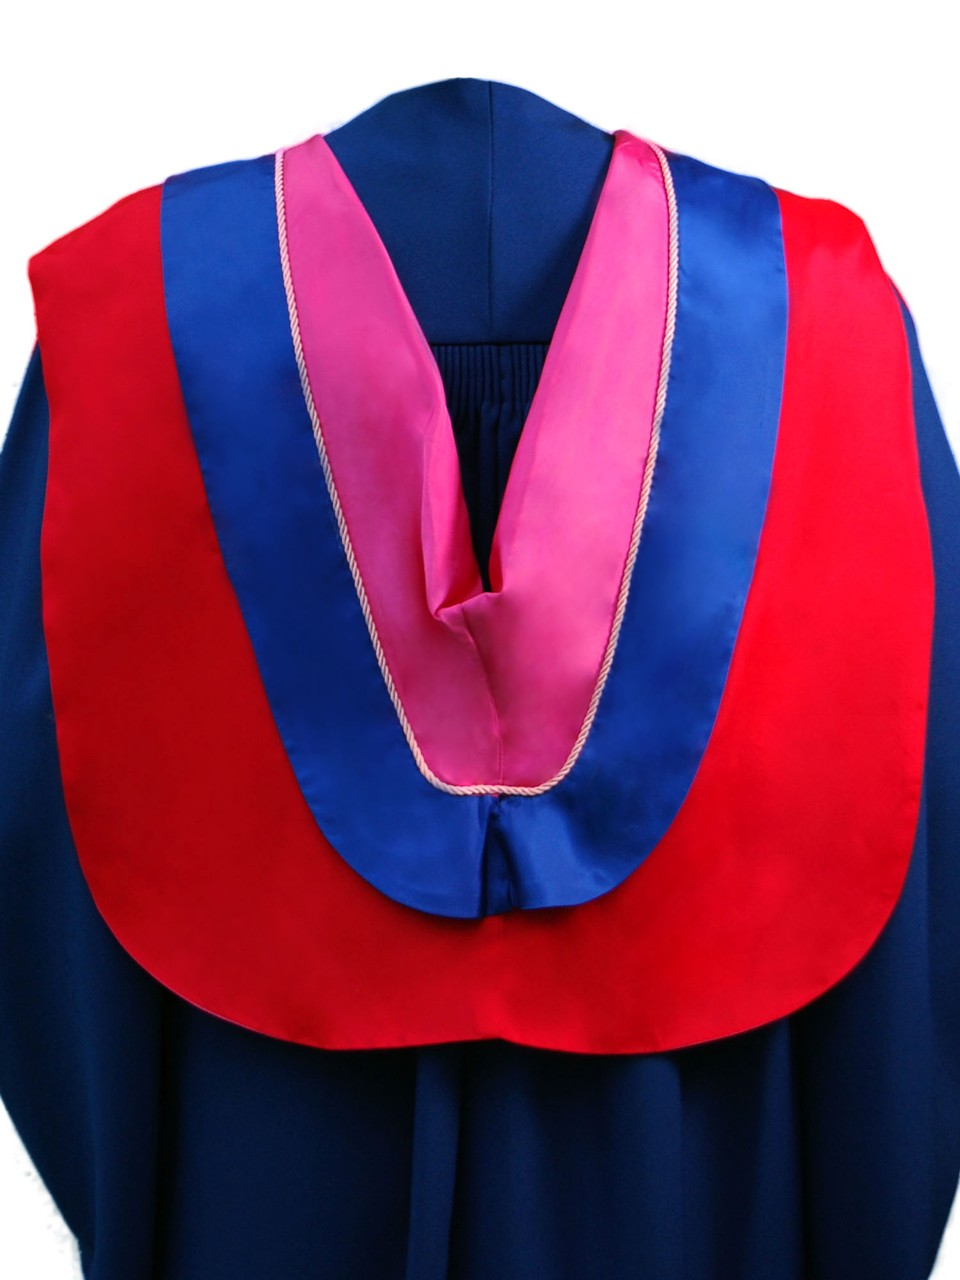 The Master of Fine Arts hood is red with wide blue border, pink cording and cerise underside